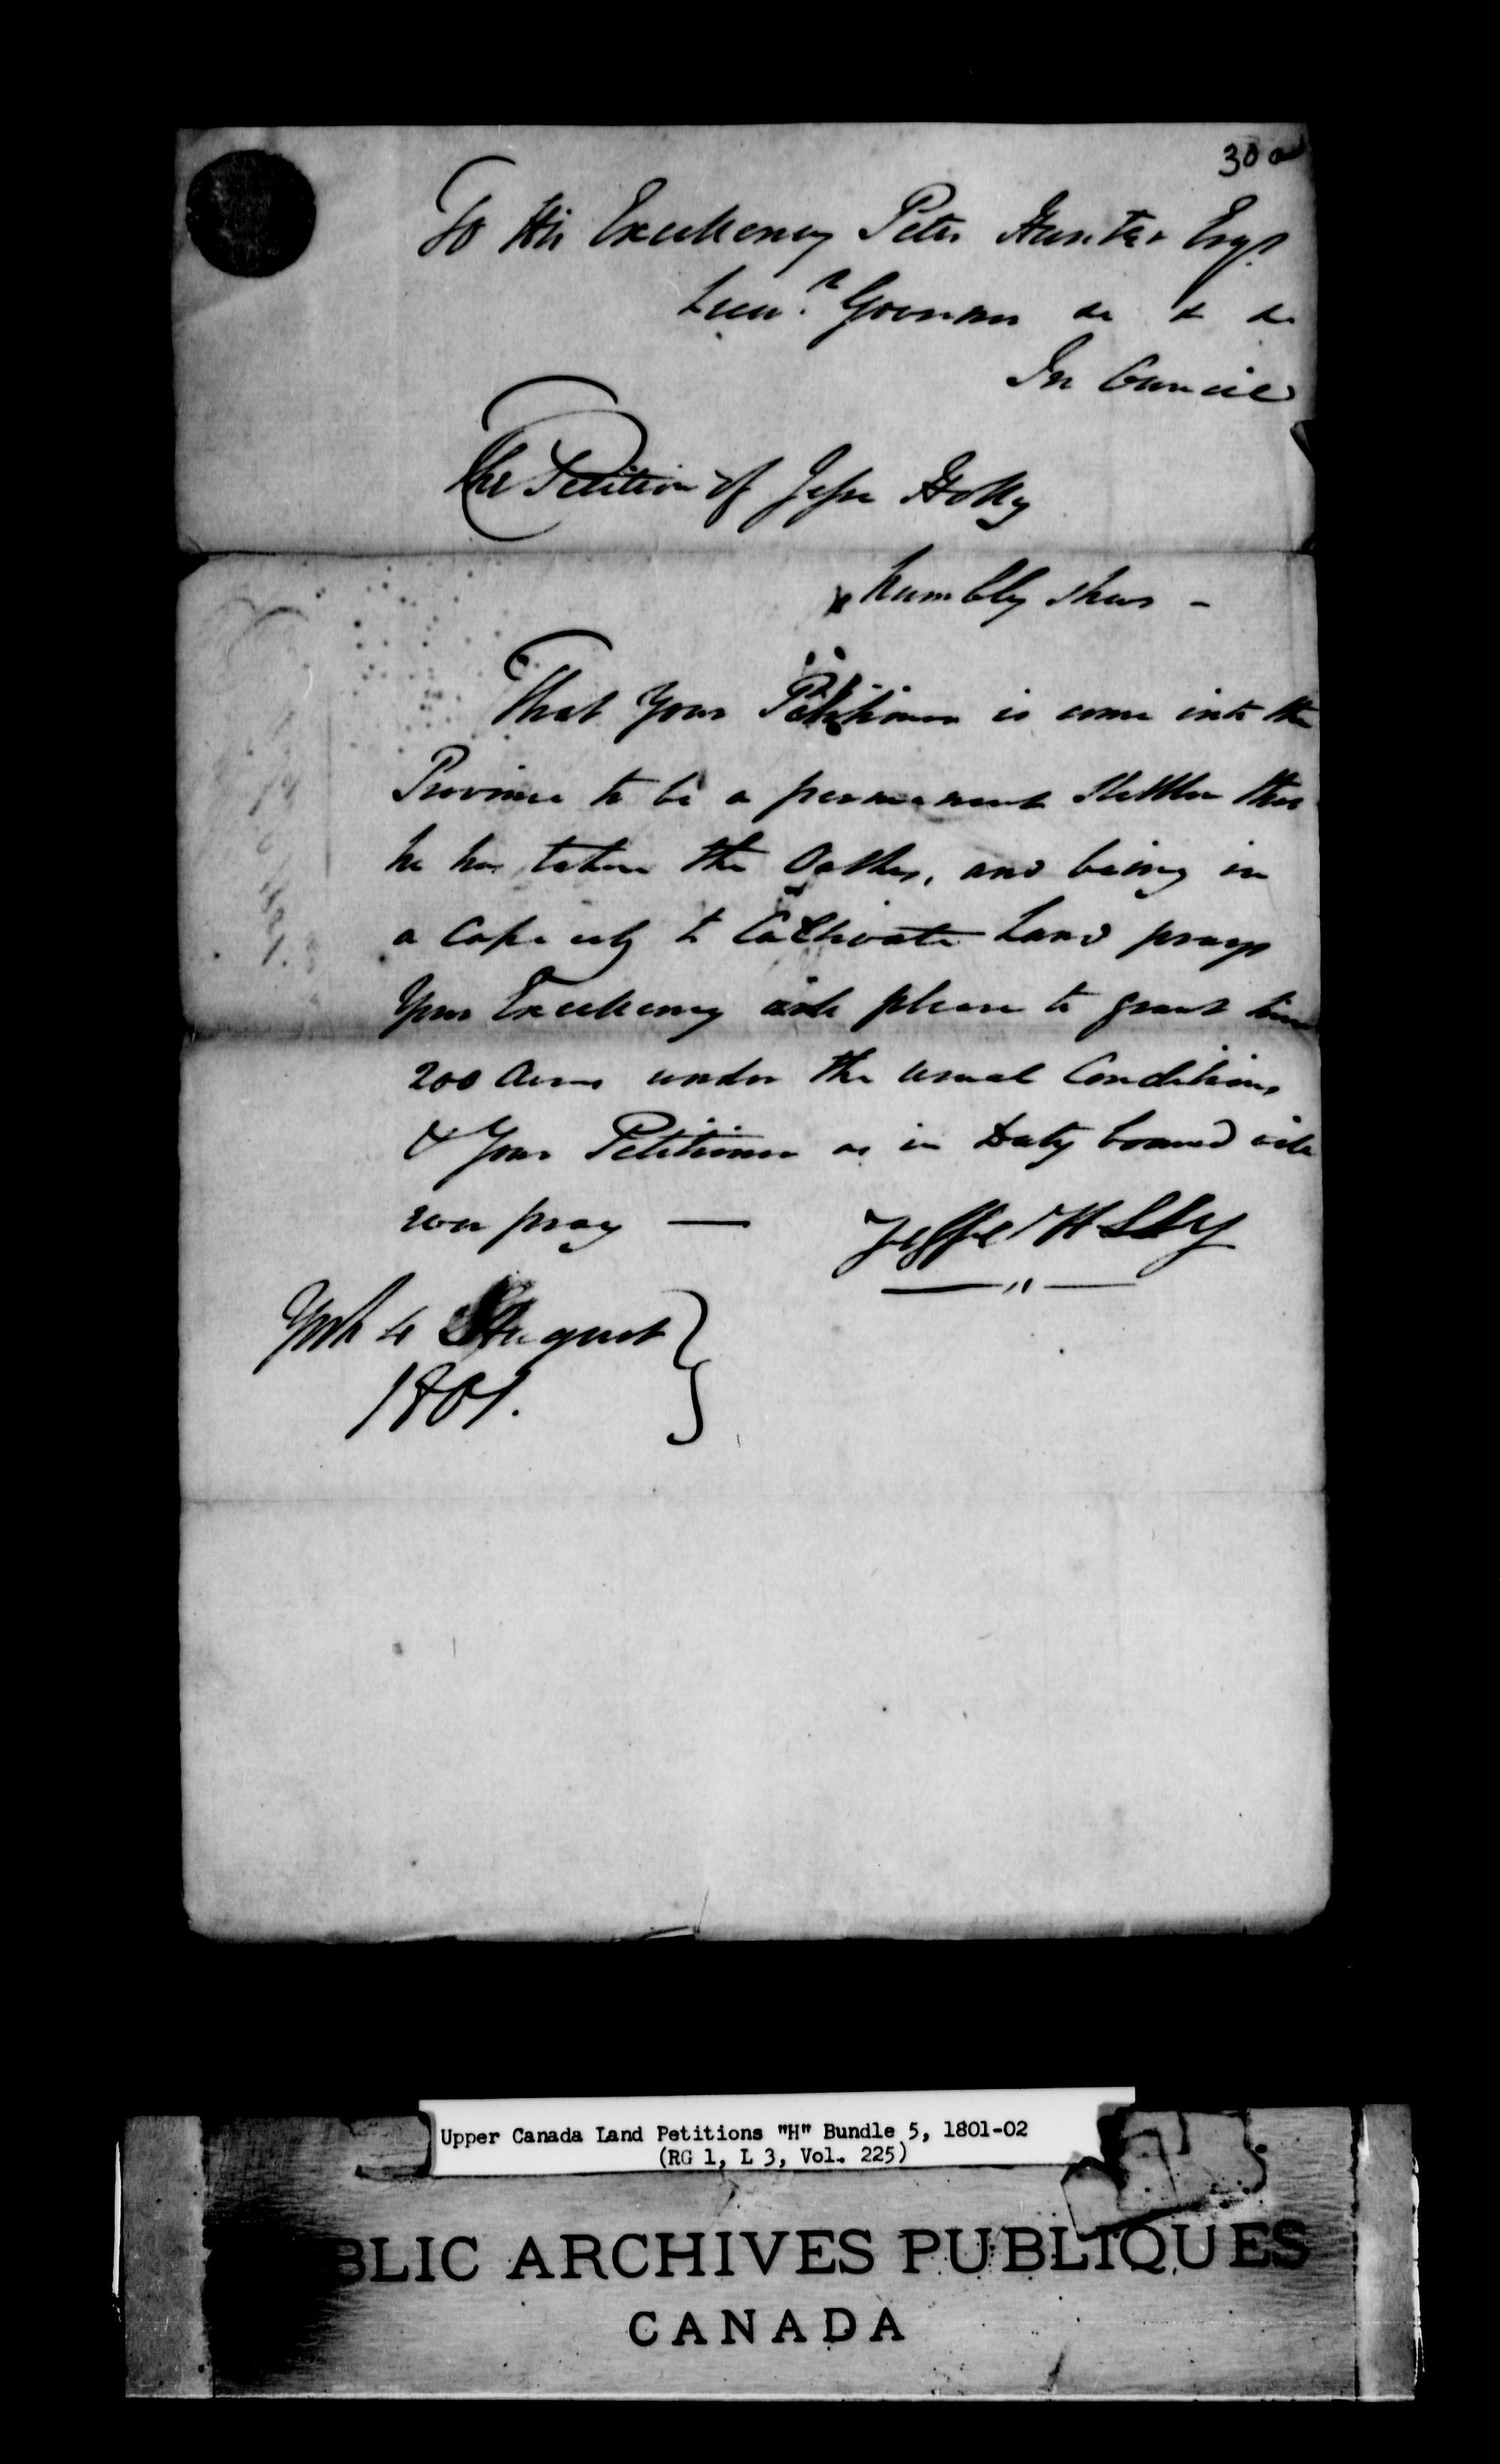 Title: Upper Canada Land Petitions (1763-1865) - Mikan Number: 205131 - Microform: c-2044